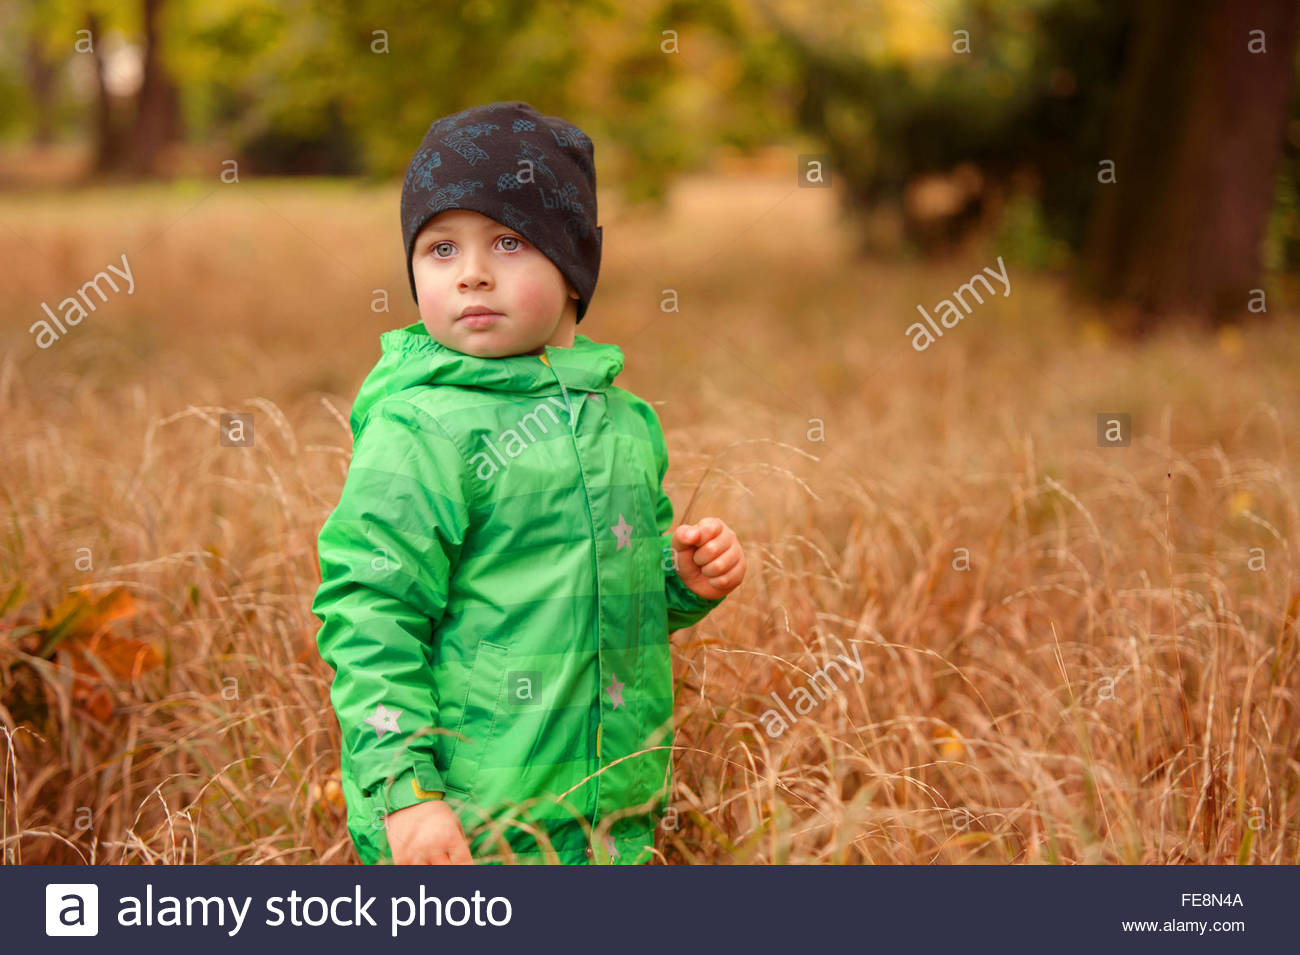 845f5604a976 Small boy with hat in the green jacket among the high autumn grass ...